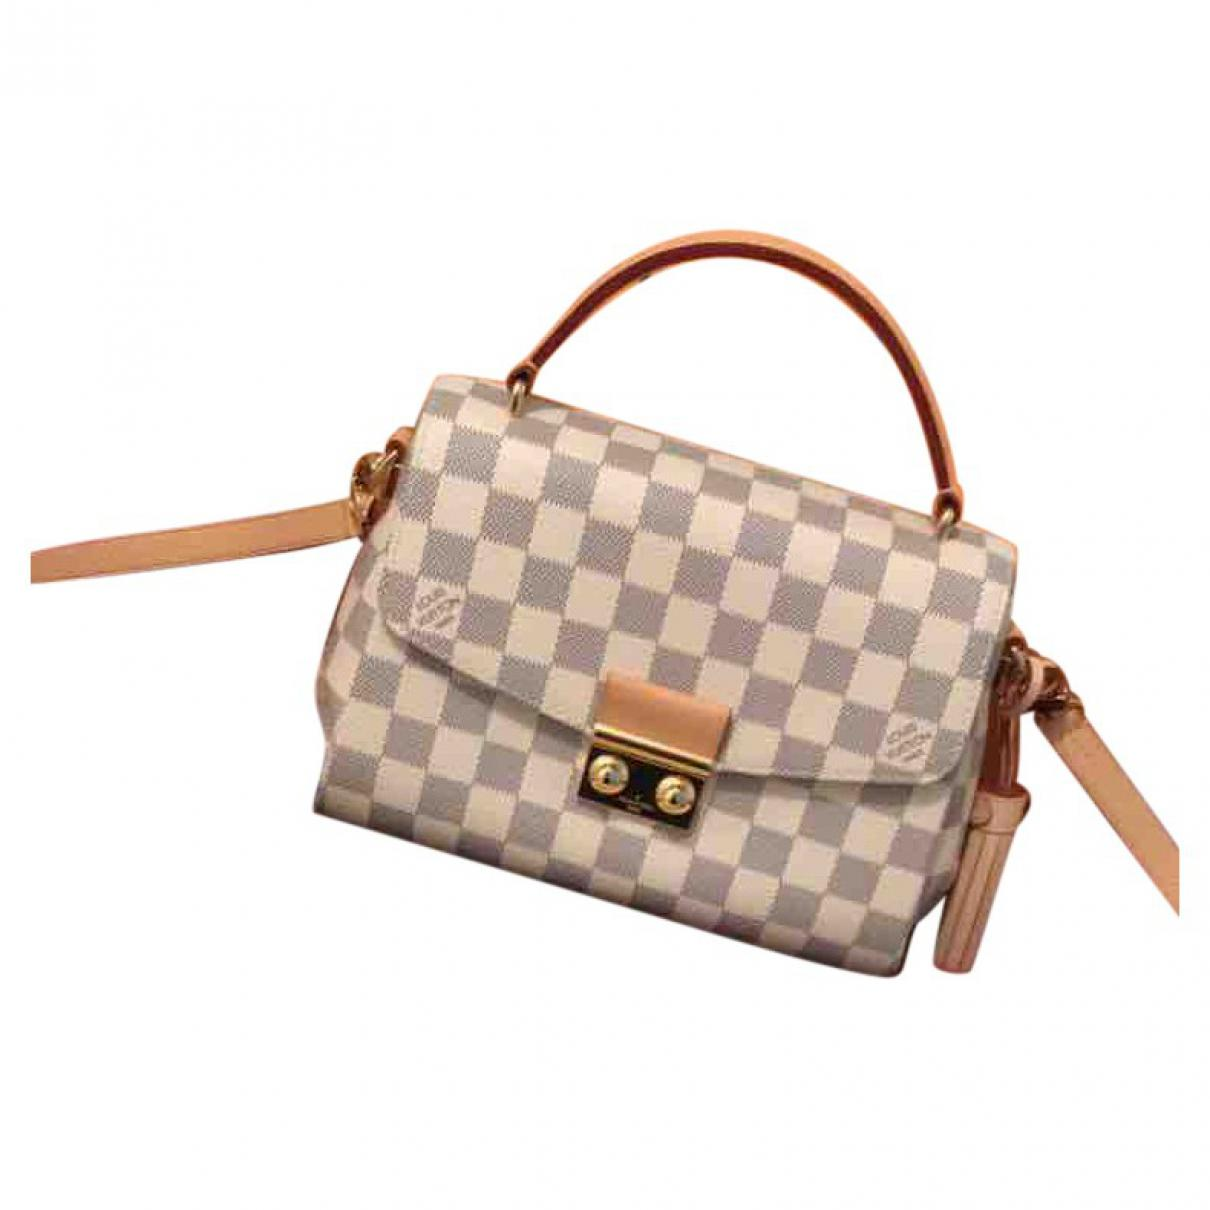 Louis Vuitton Croisette Leather Crossbody Bag In White Lyst